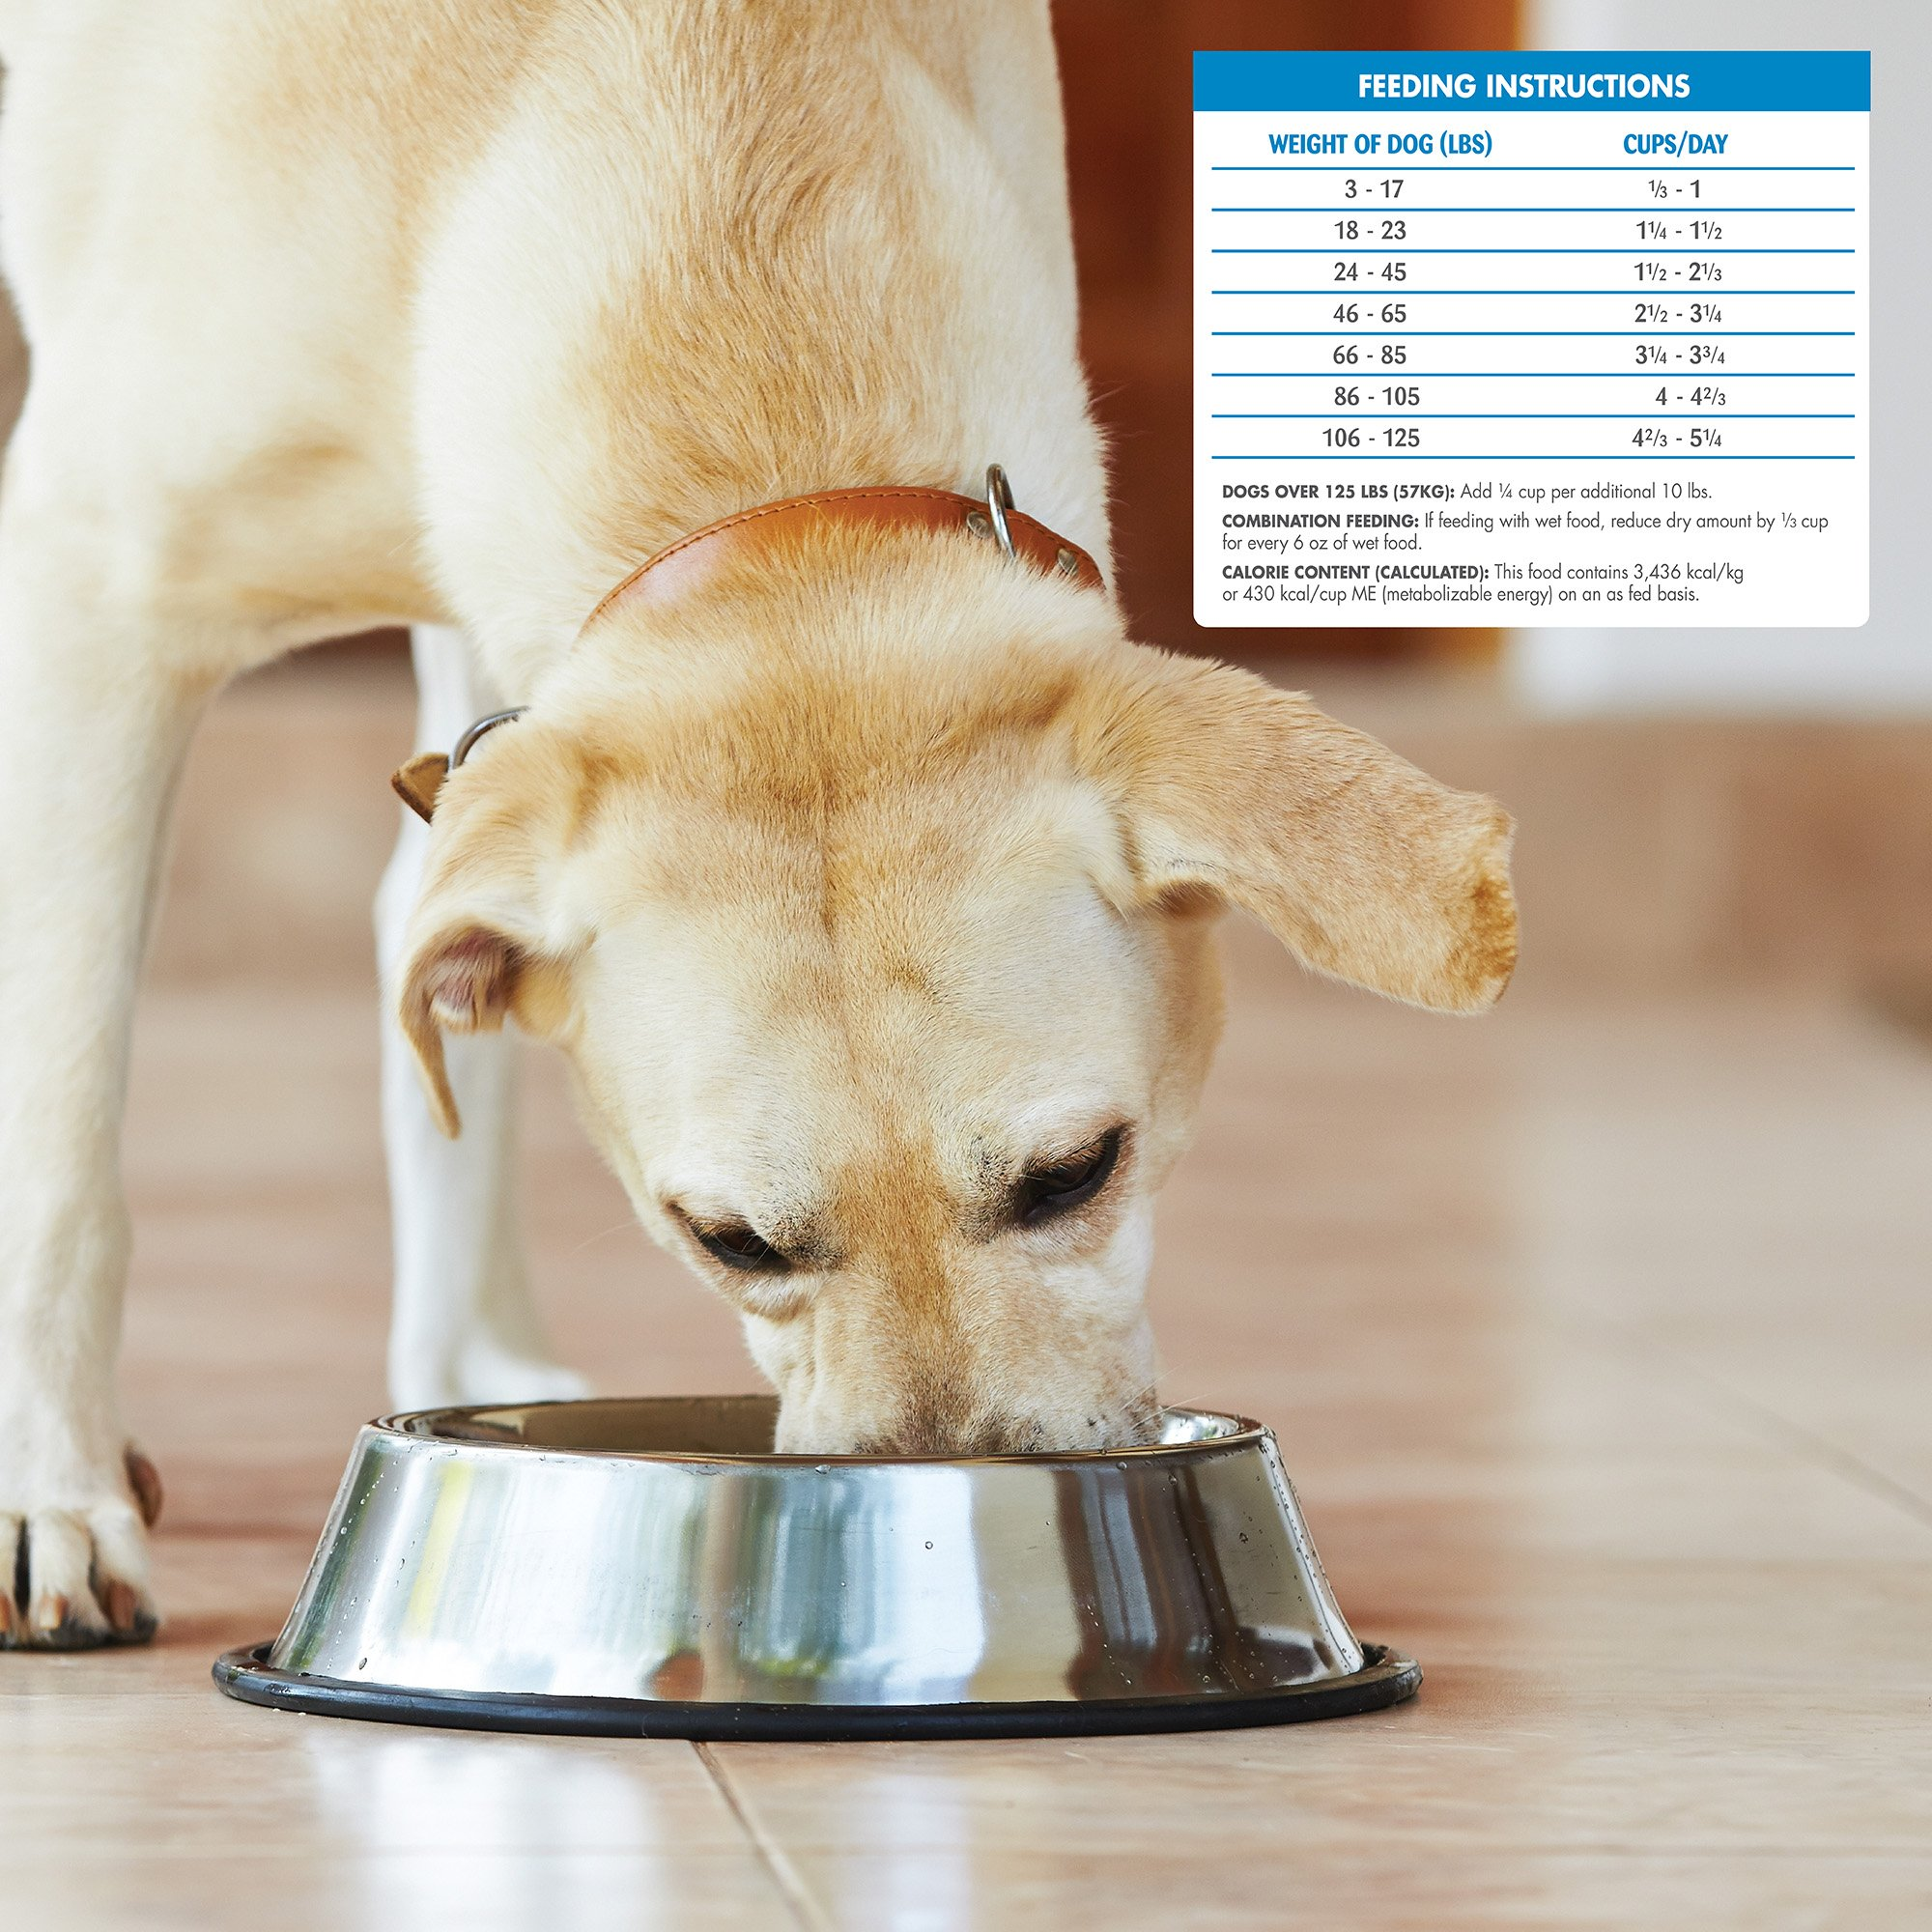 Wellness Simple Natural Grain Free Dry Limited Ingredient Dog Food, Turkey & Potato, 26-Pound Bag by Wellness Natural Pet Food (Image #7)